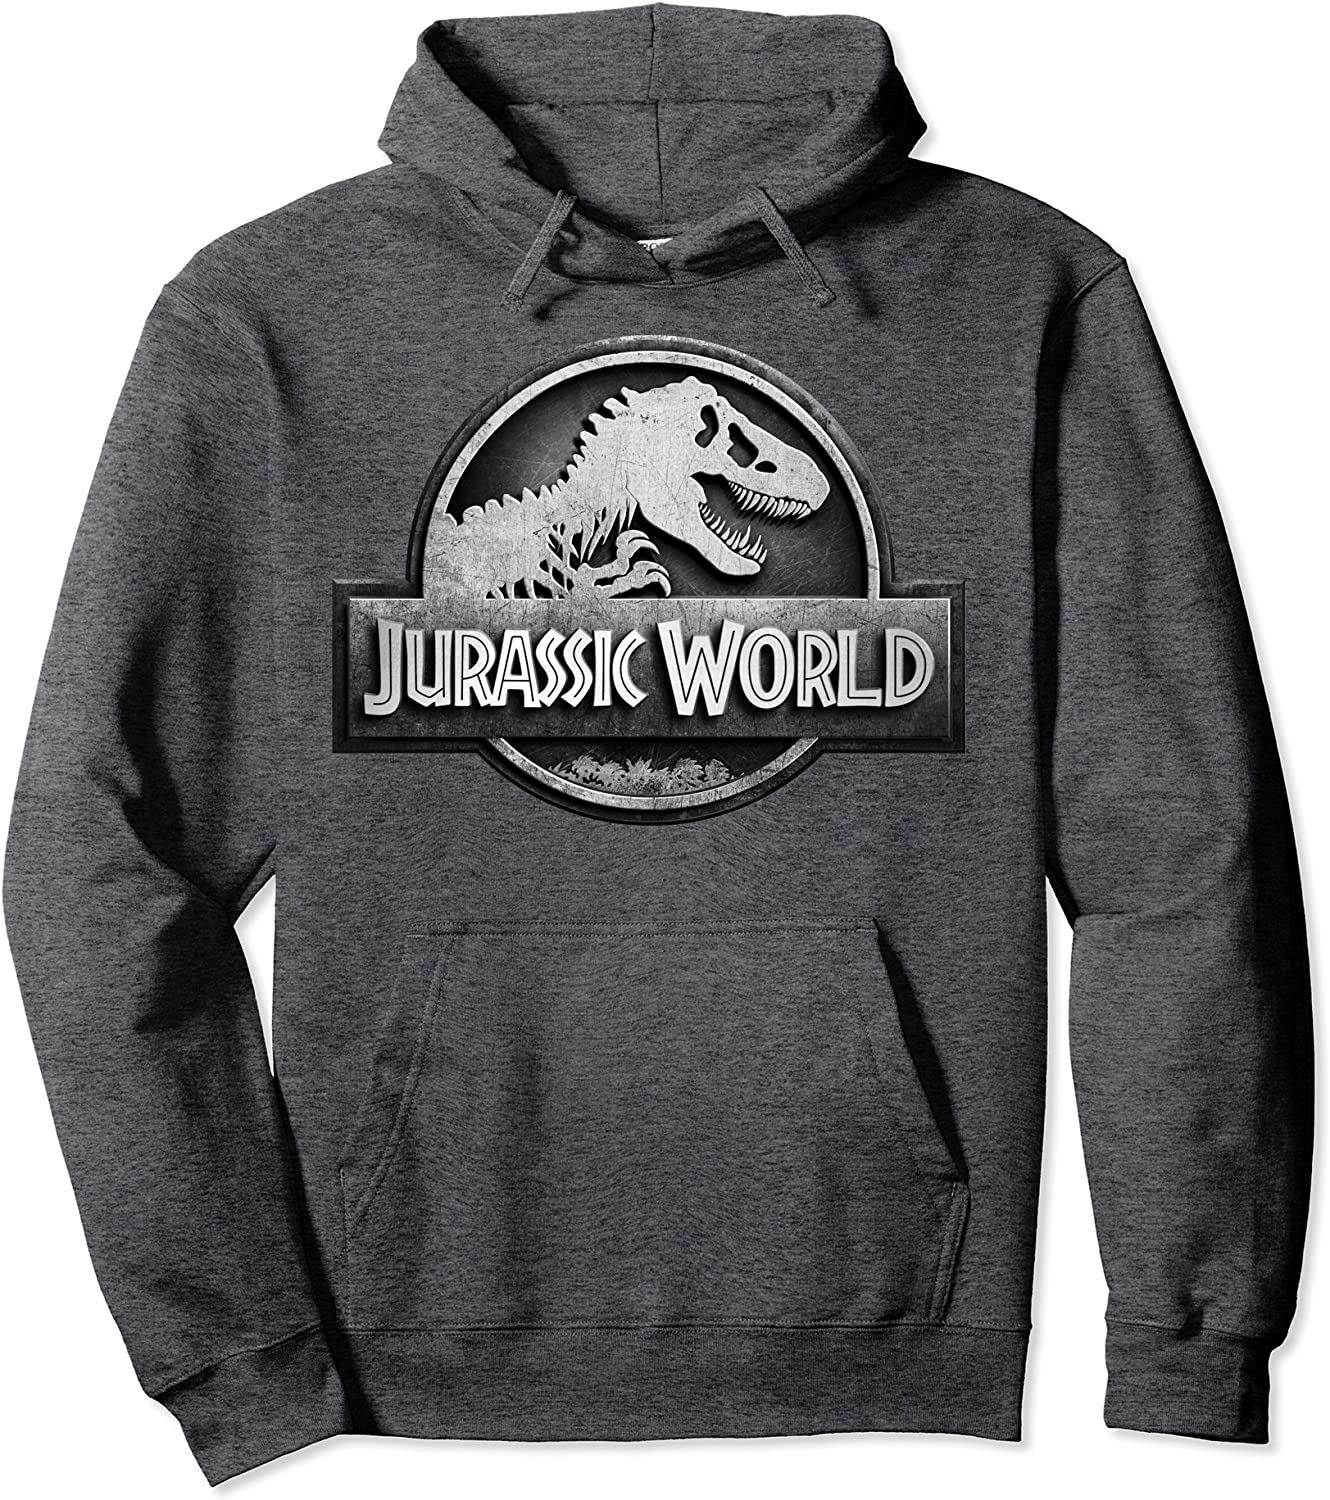 Jurassic World Movie Hoodie Special Campaign Pullover Logo At the price